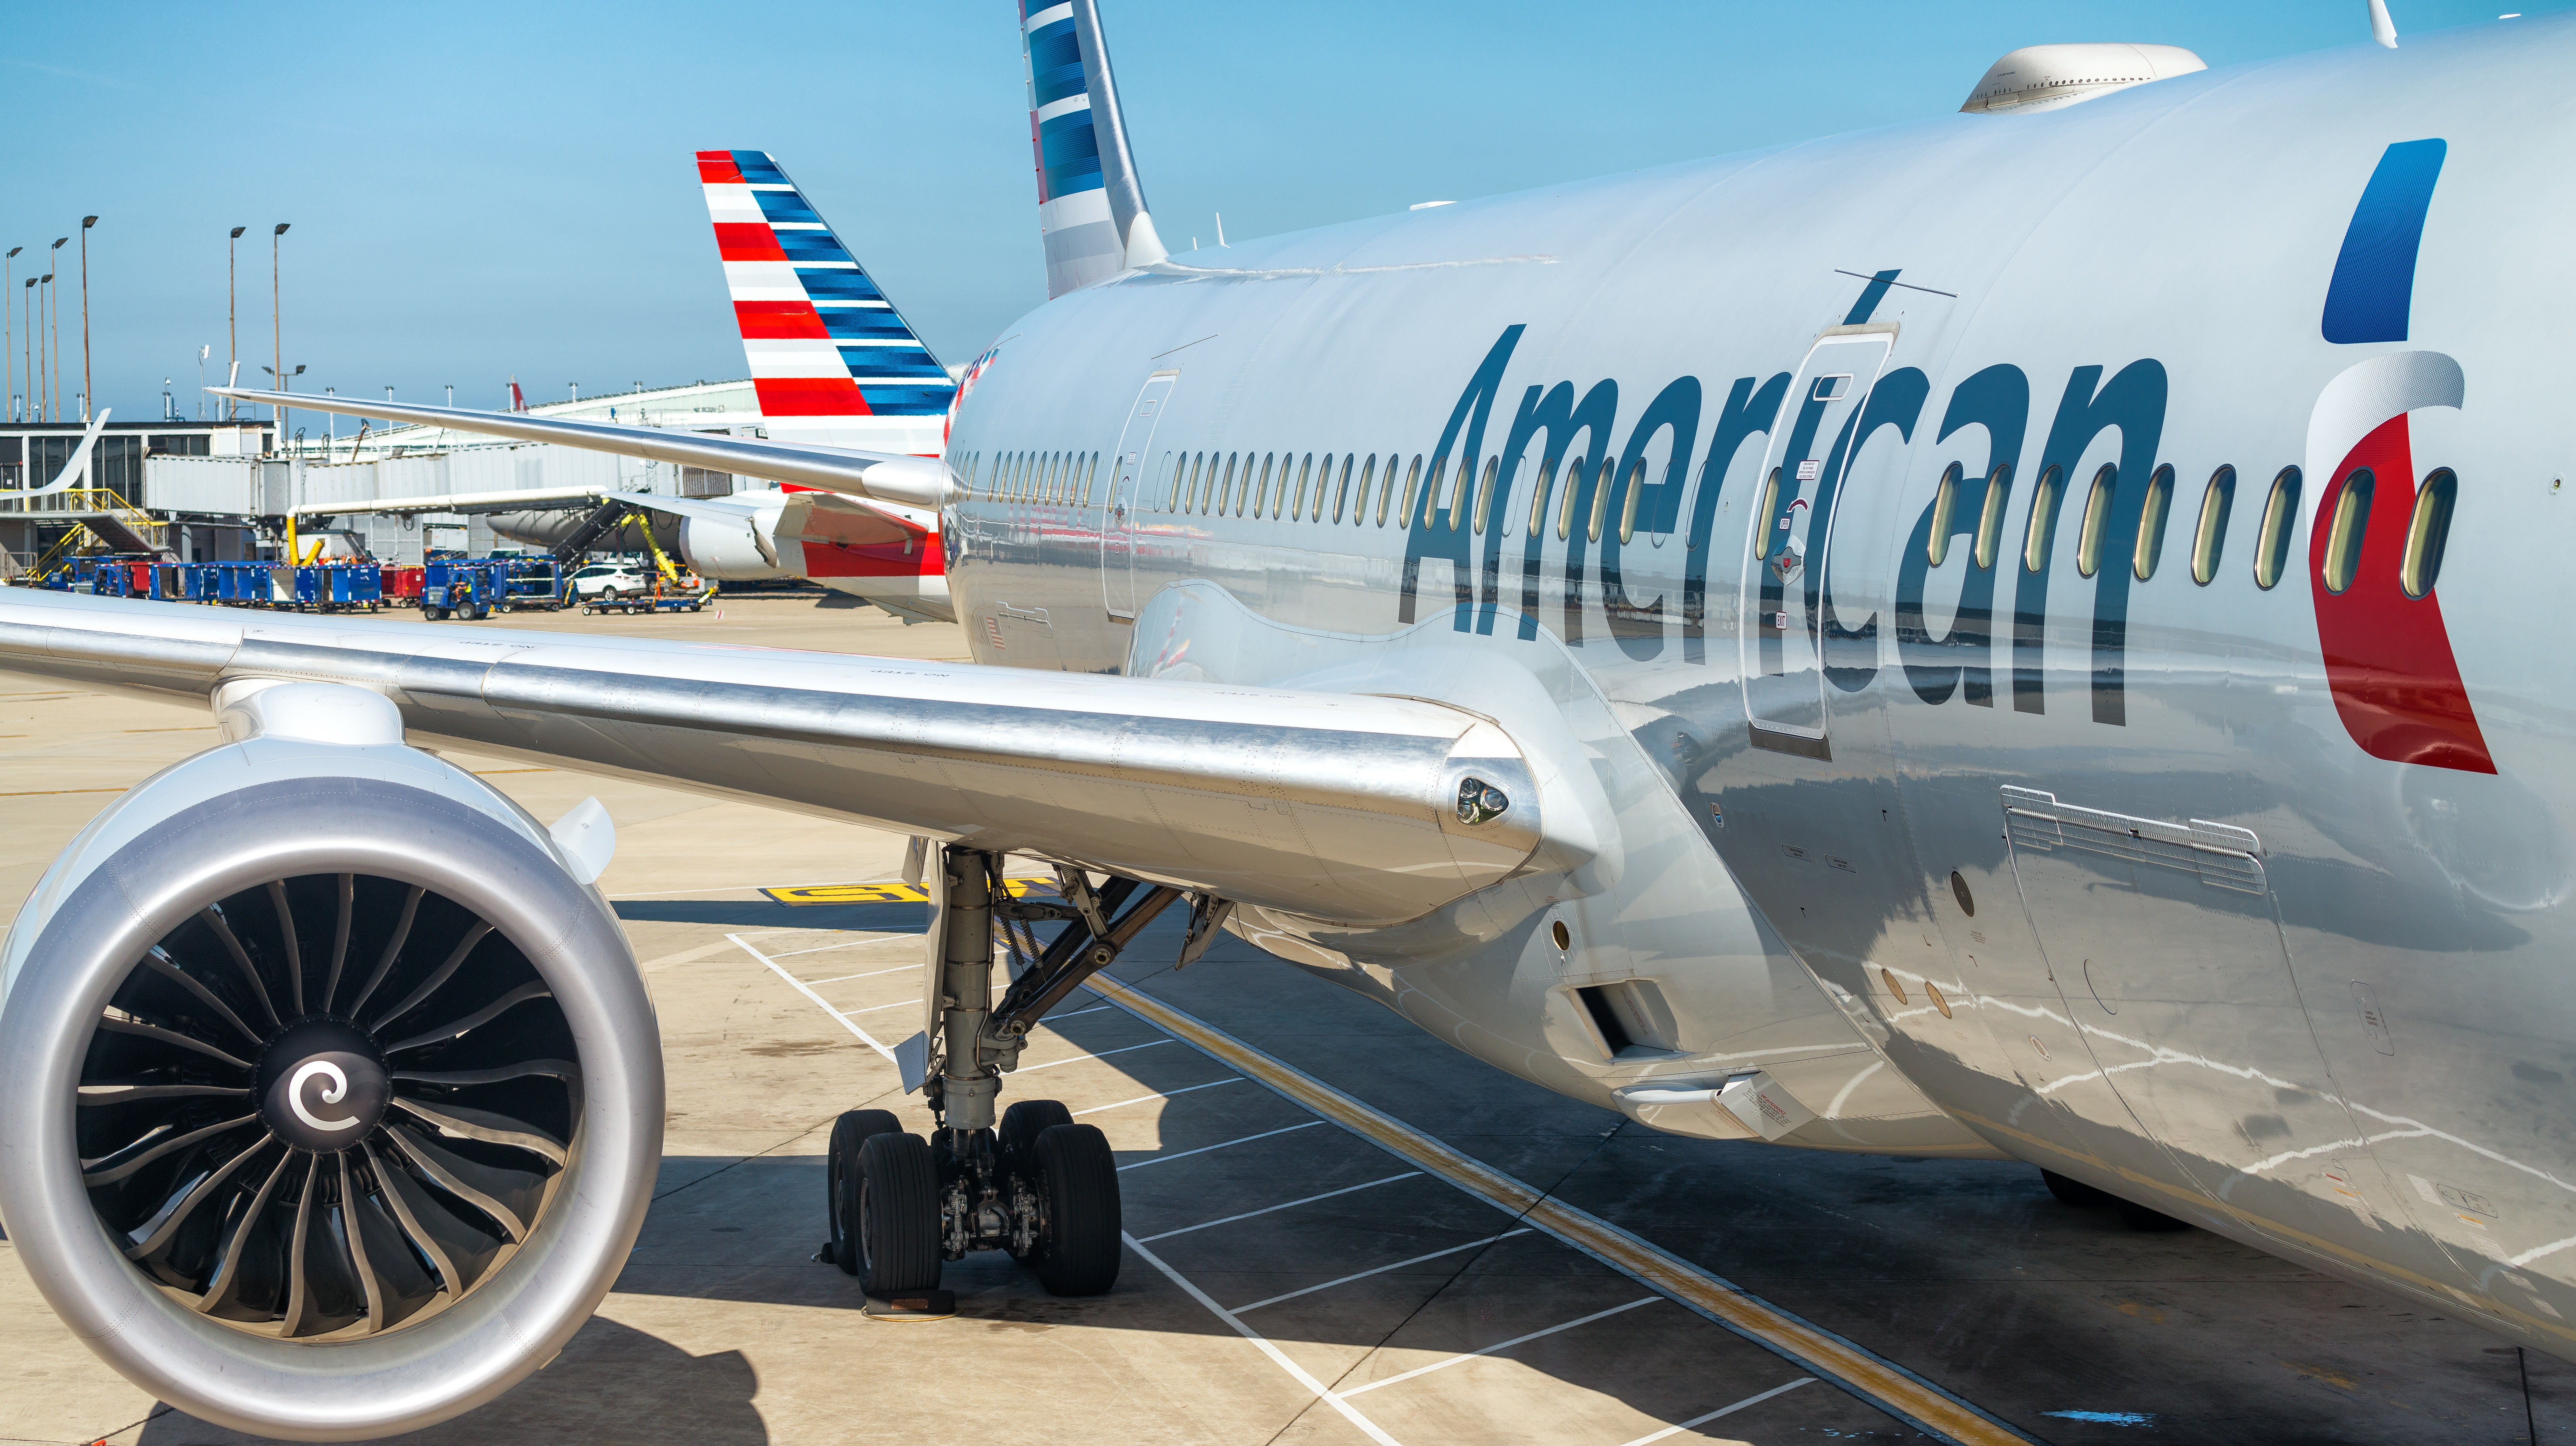 The Best And Worst U.S. Airlines, Ranked